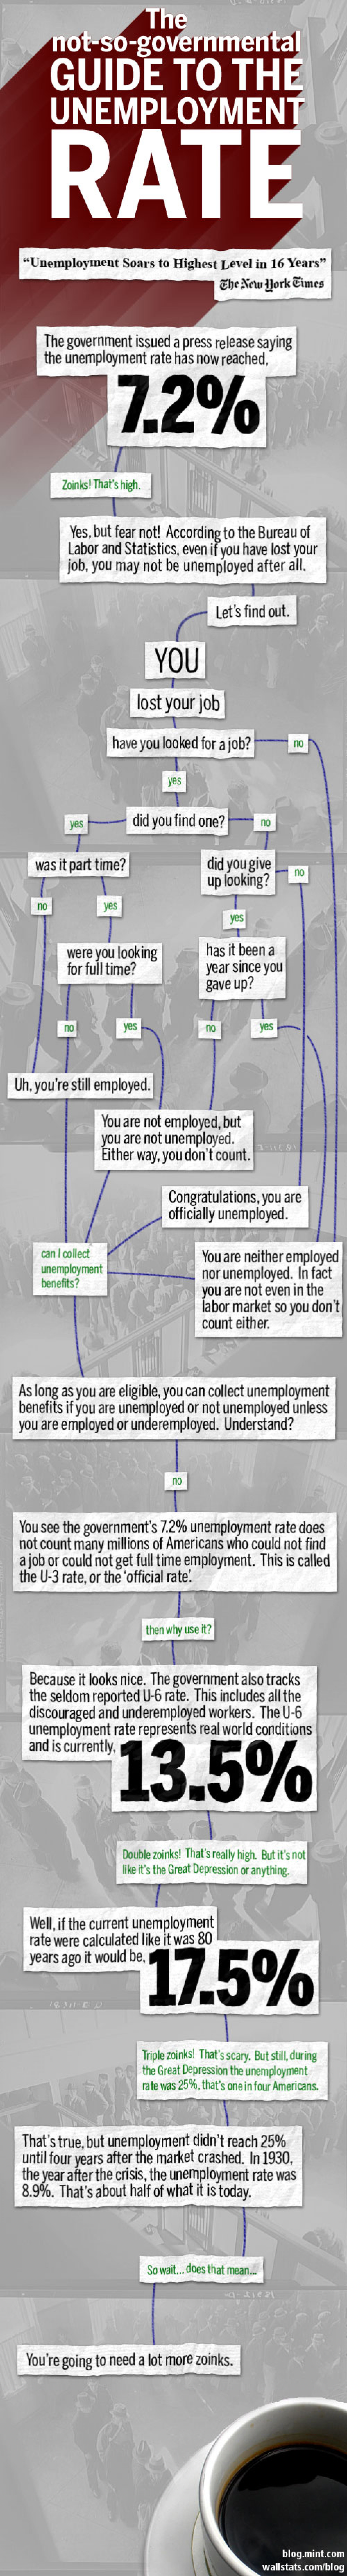 The Not-so-governmental Guide to the Unemployment Rate Infographic